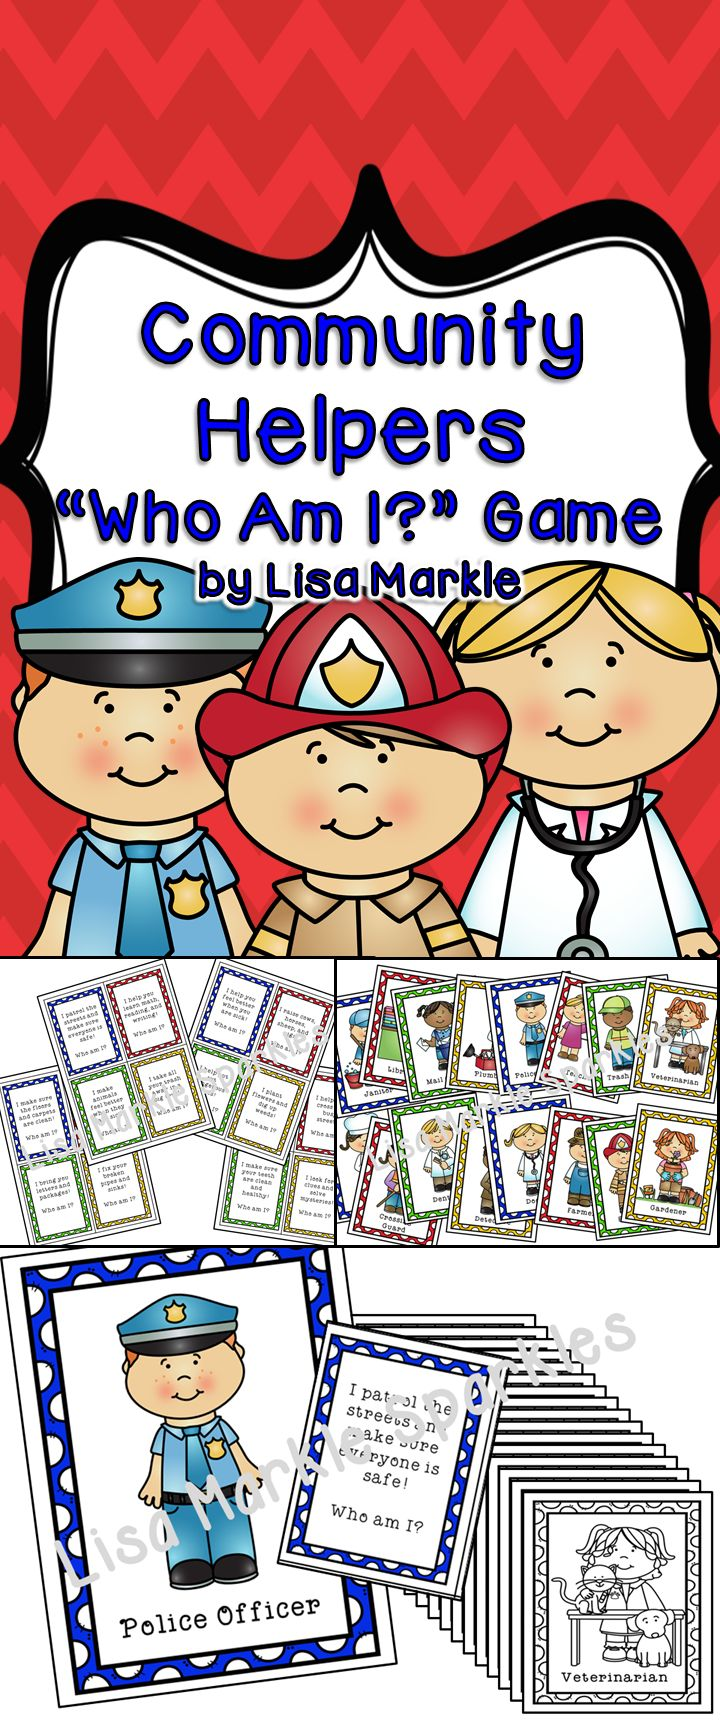 Play this fun interactive game with your students to teach them about 16 different community helpers! You can use this a multitude of ways for different grades and abilities! It can be a circle time activity for preschool. Have each child hold a community helper and as you read the clues, they can decide if that's what their community helper does! Or you can use it in an elementary classroom as a reading comprehension literacy center matching activity! Black and white version included!